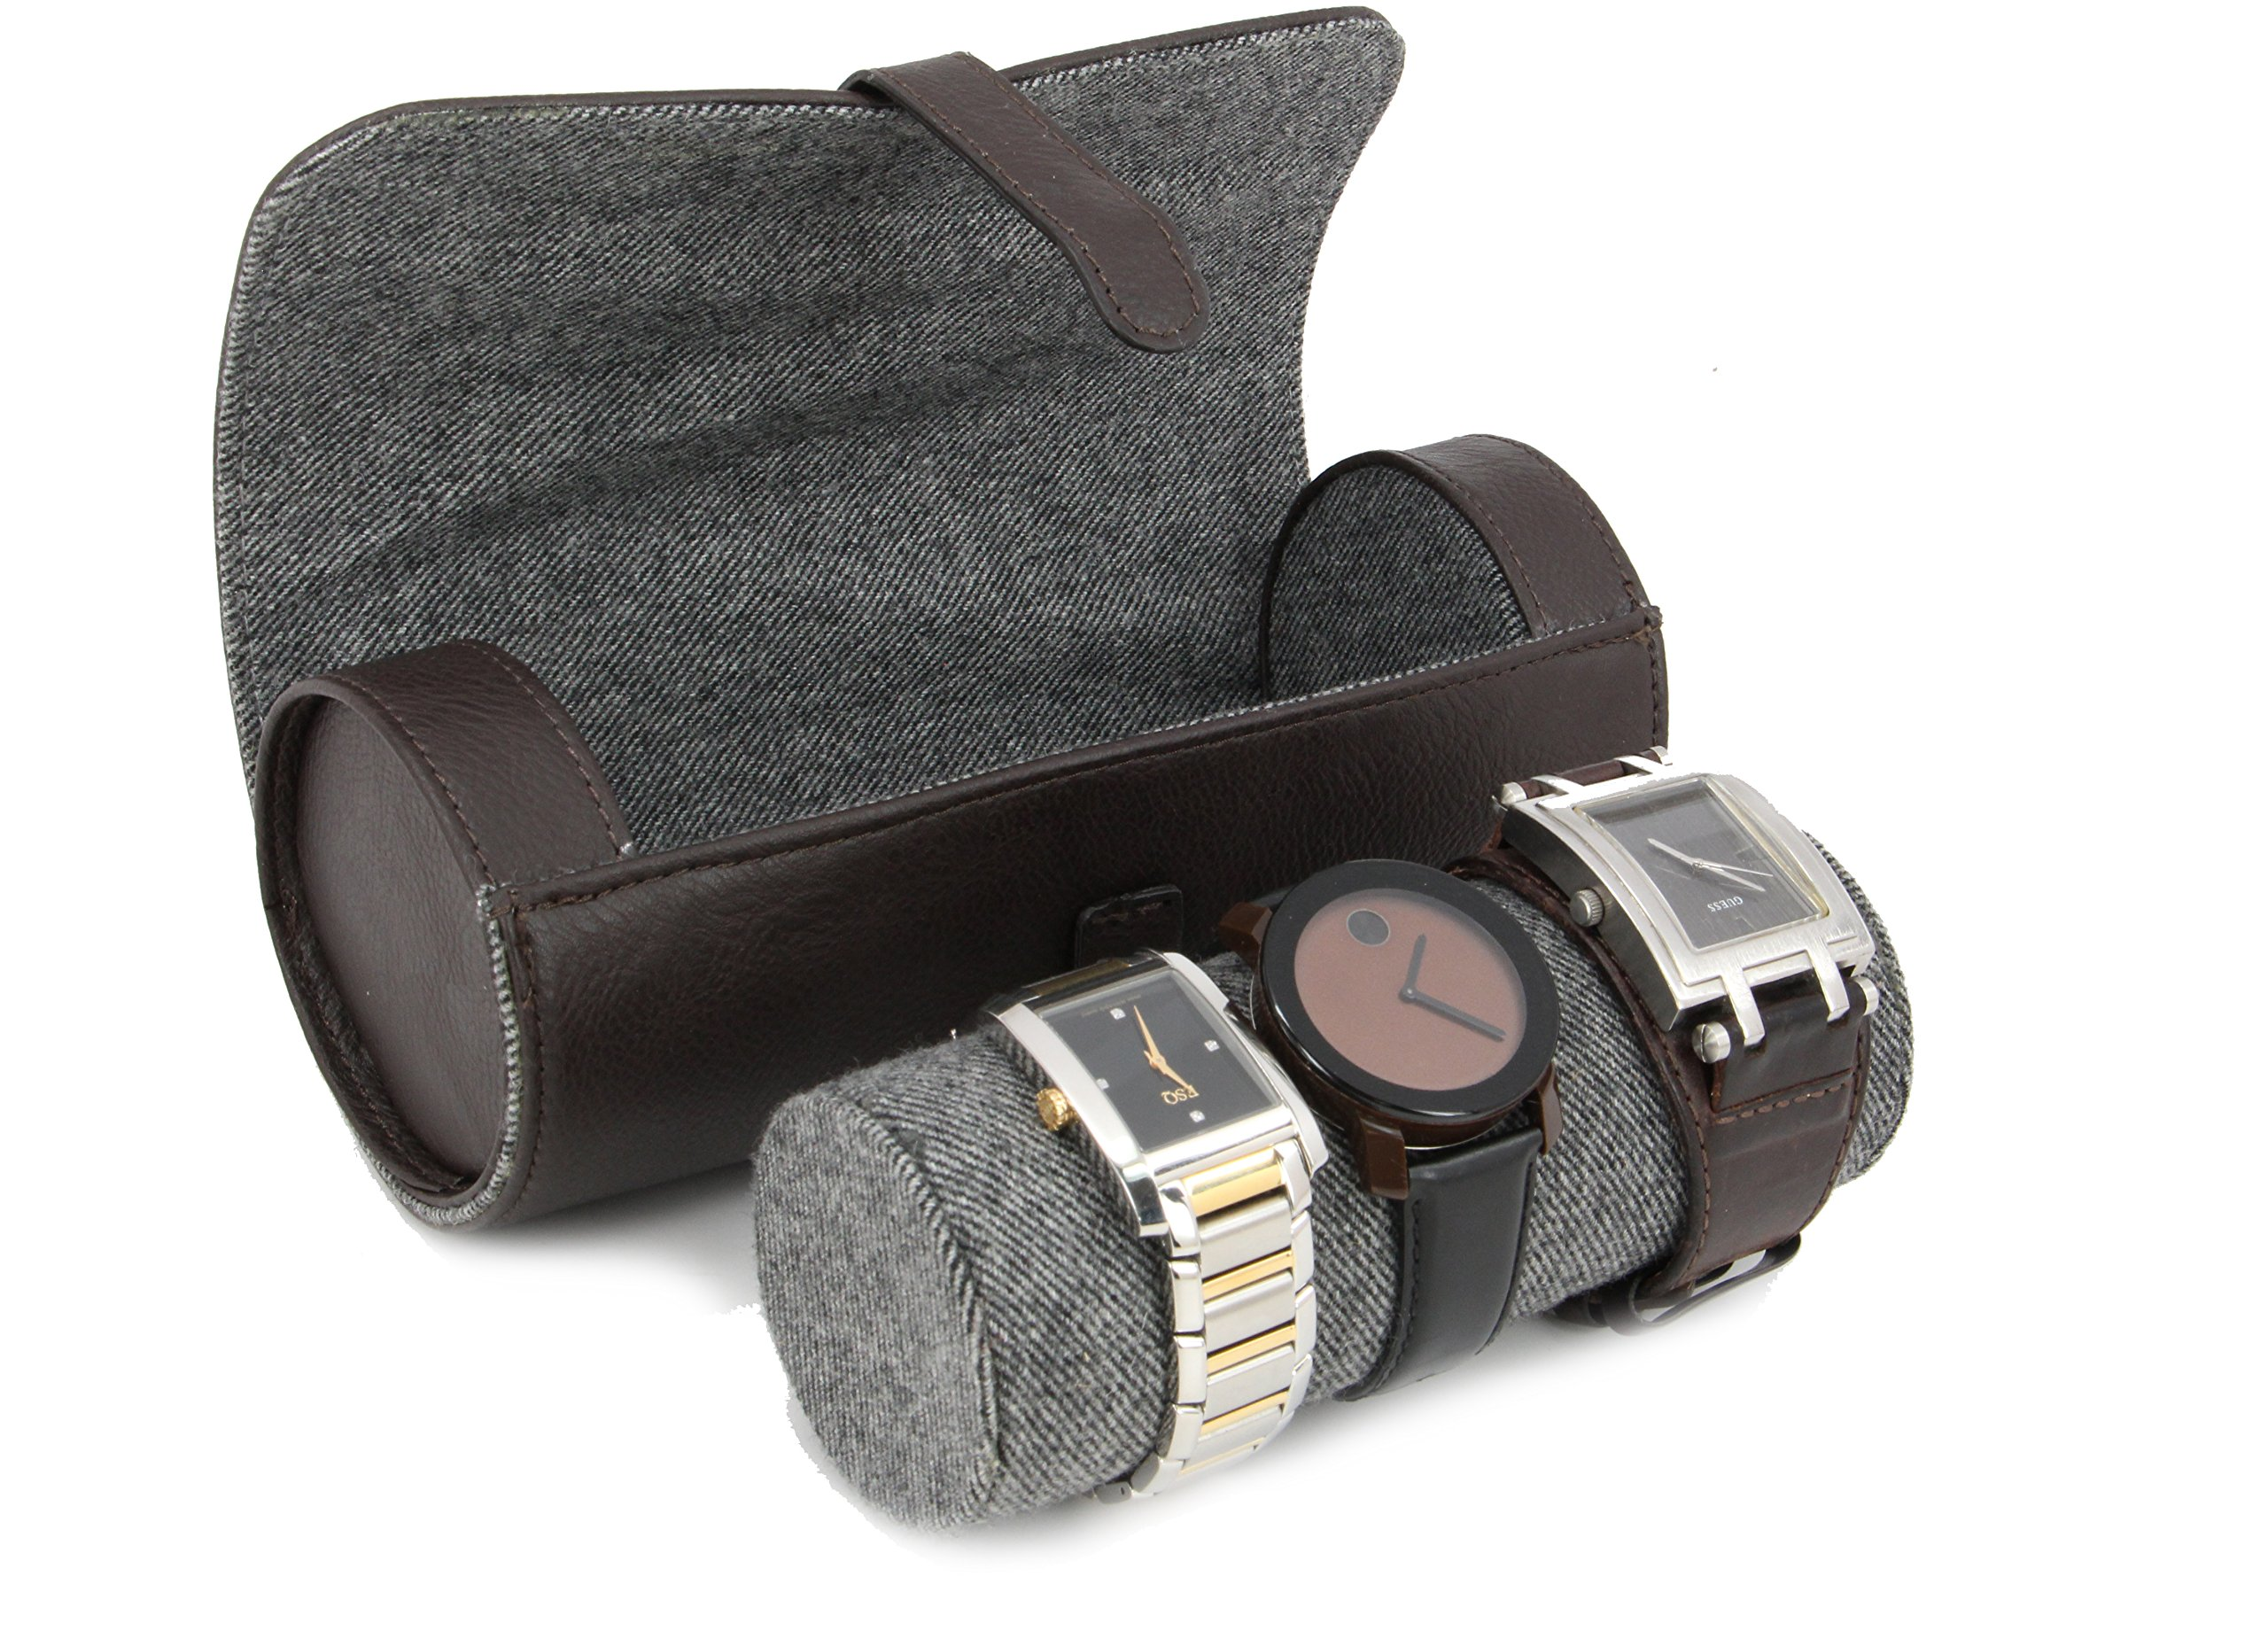 Executive High class Men's Watches and Bracelets Jewelry Box Gift (Buff)